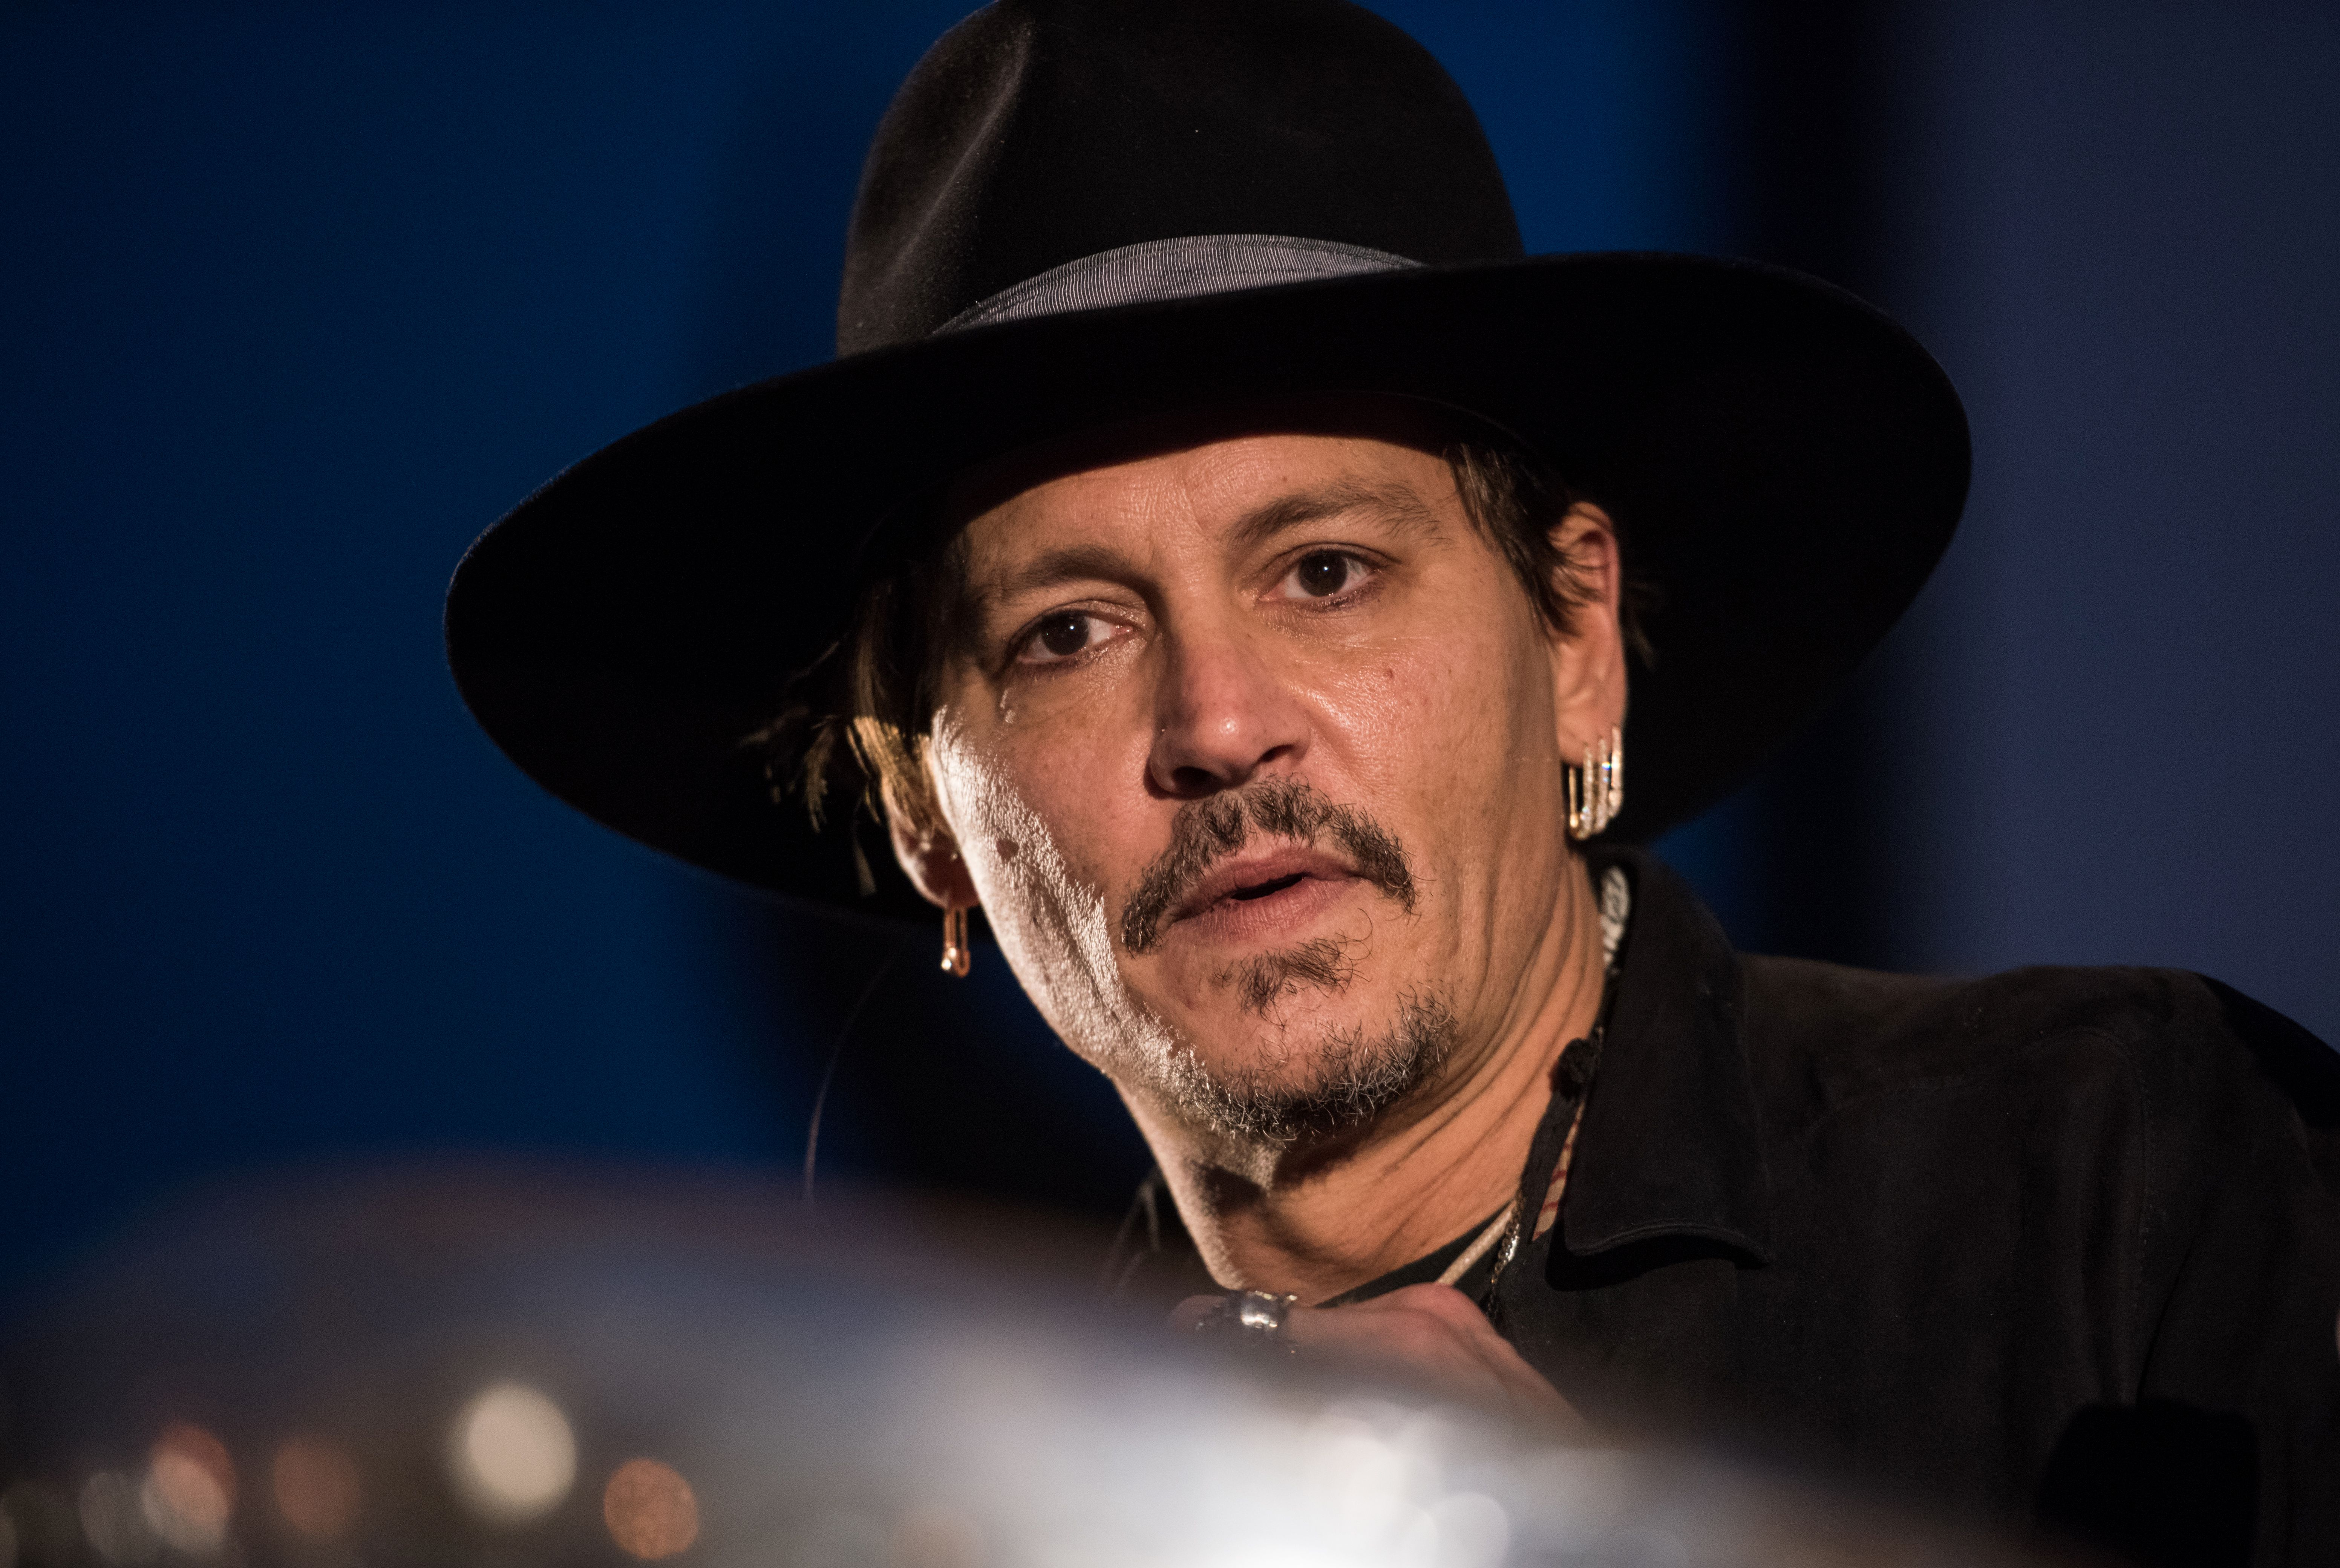 Actor Johnny Depp introduces his film 'The Libertine' to an audience at Day 1 of the 2017 Glastonbury Festival, on June 22, 2017.  / AFP PHOTO / OLI SCARFF        (Photo credit should read OLI SCARFF/AFP/Getty Images)